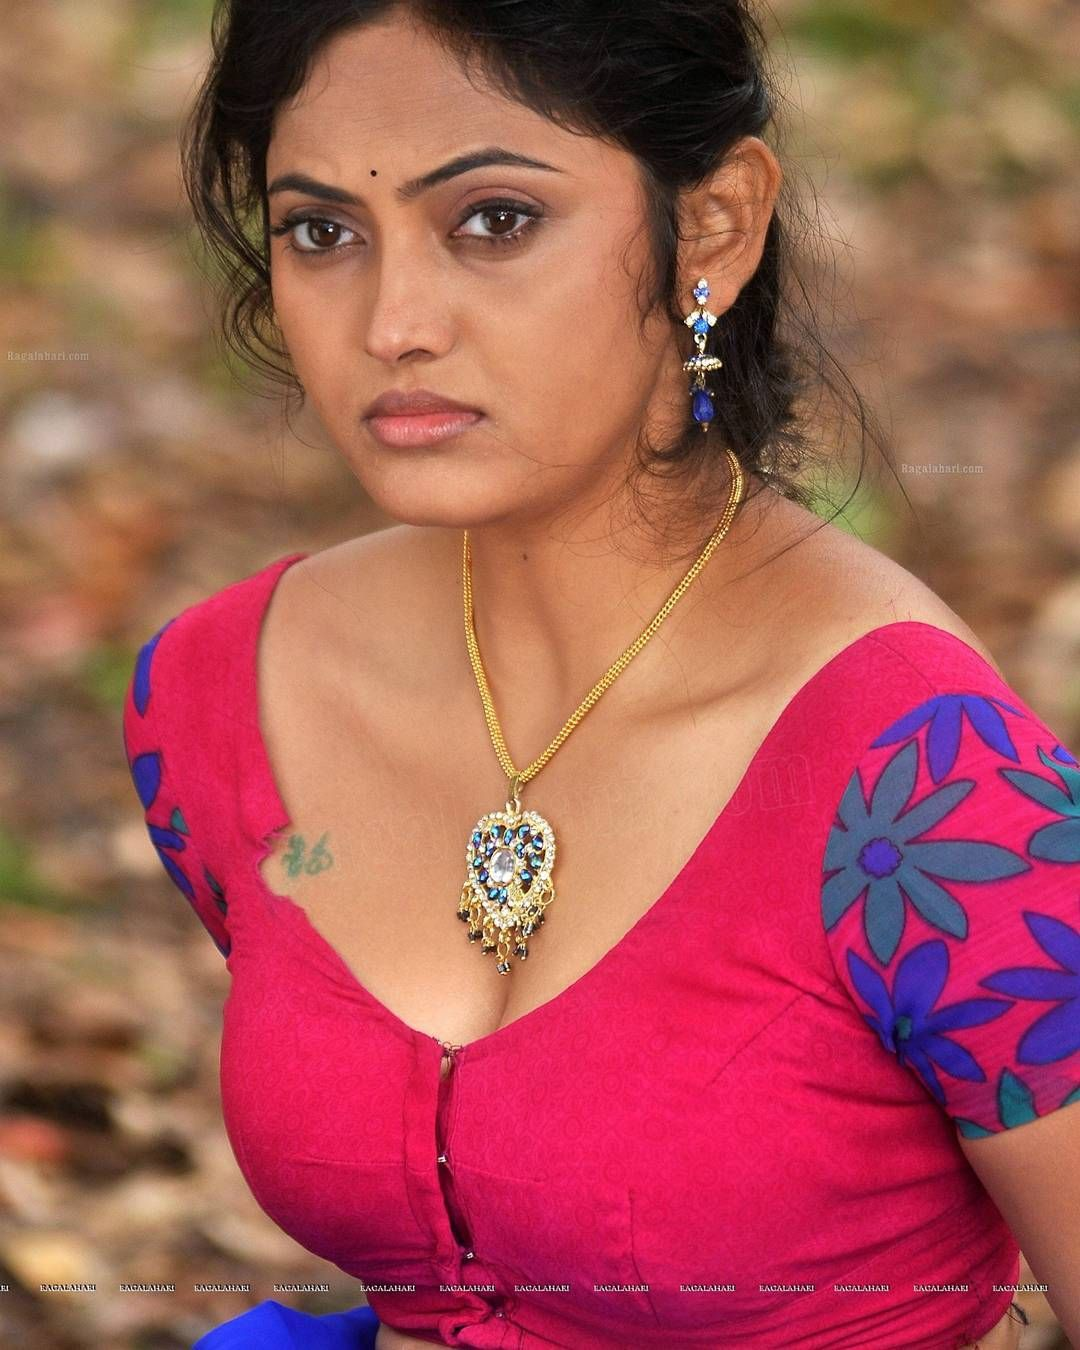 Free download top ten tamil actress hot cleavage and boobs wallpapers tamil wall